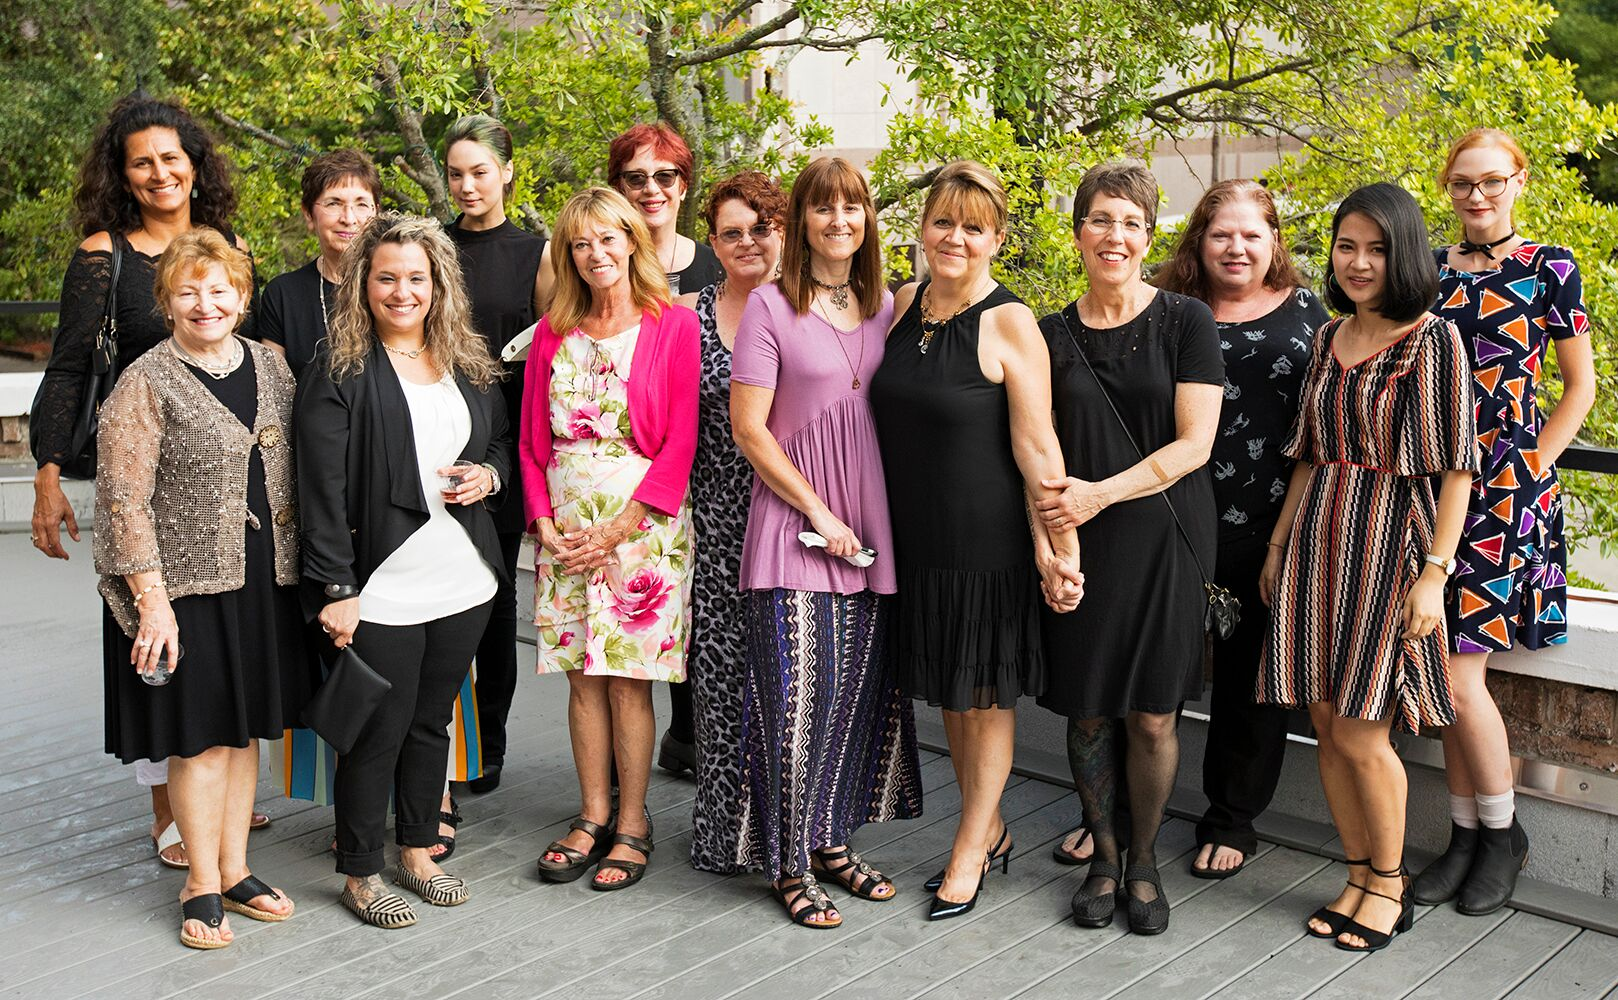 Some of the fantastic members of Fem Art Gallery. Photo Credit: Toni Smailagic